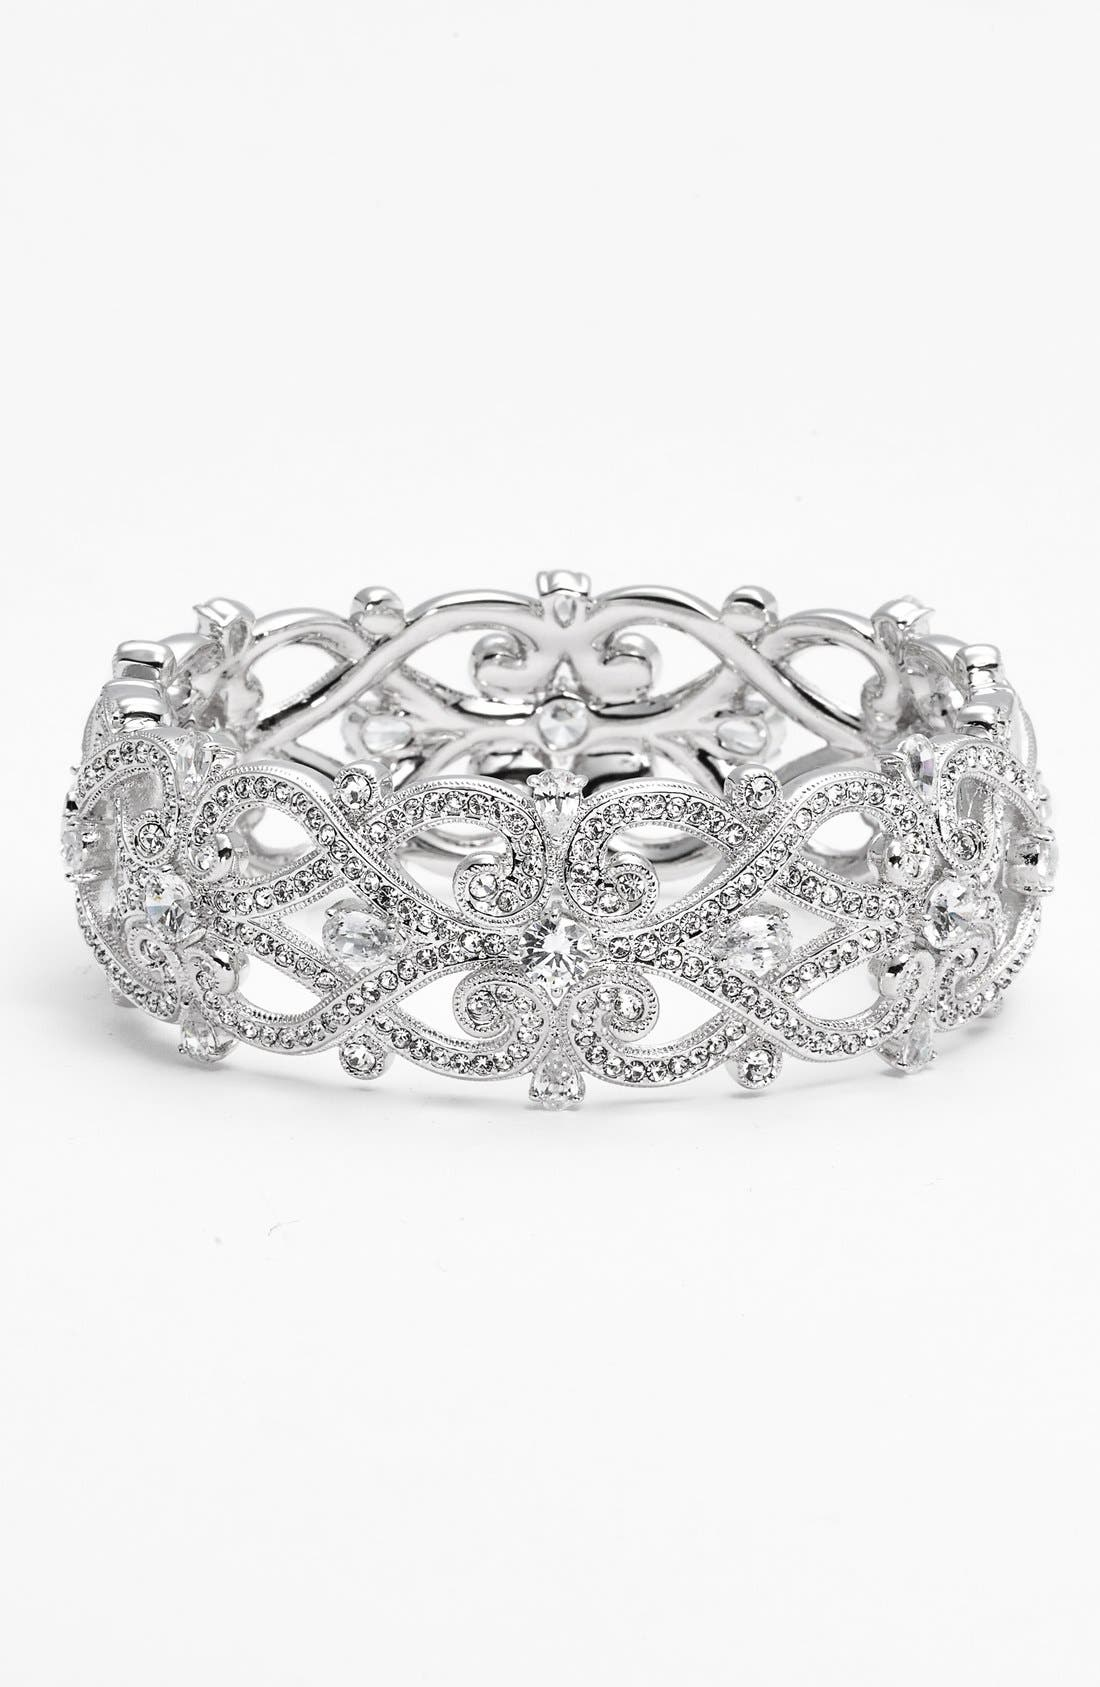 Alternate Image 1 Selected - Nadri 'Celtic Knot' Crystal Bangle